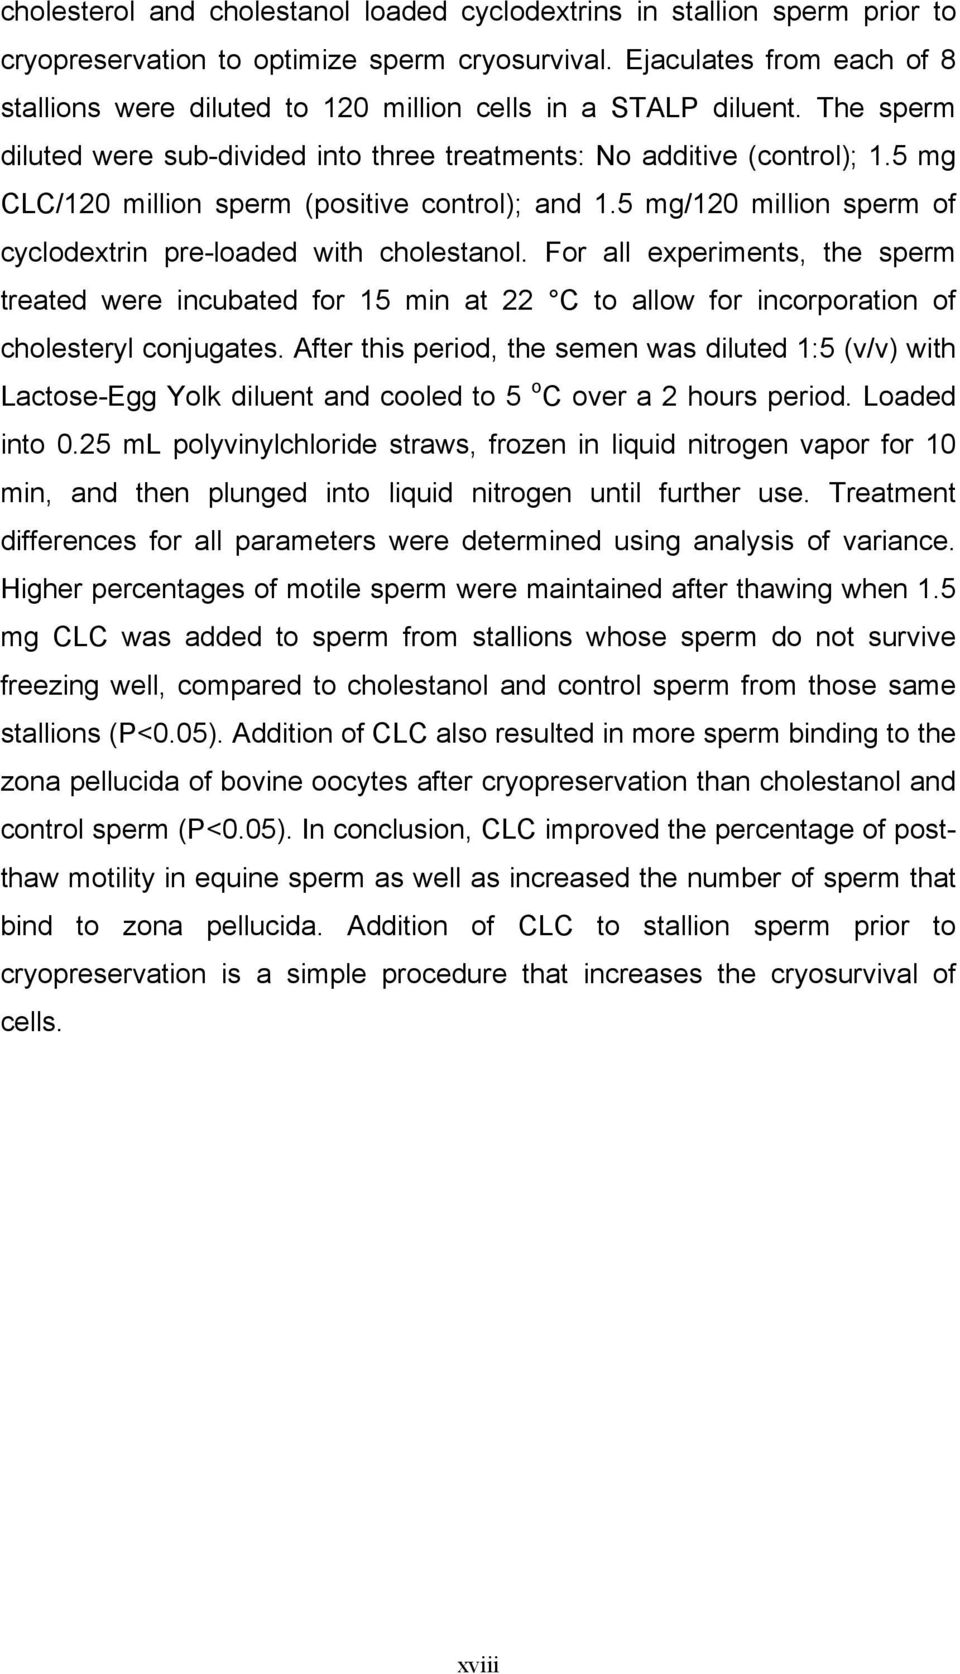 5 mg CLC/120 million sperm (positive control); and 1.5 mg/120 million sperm of cyclodextrin pre-loaded with cholestanol.